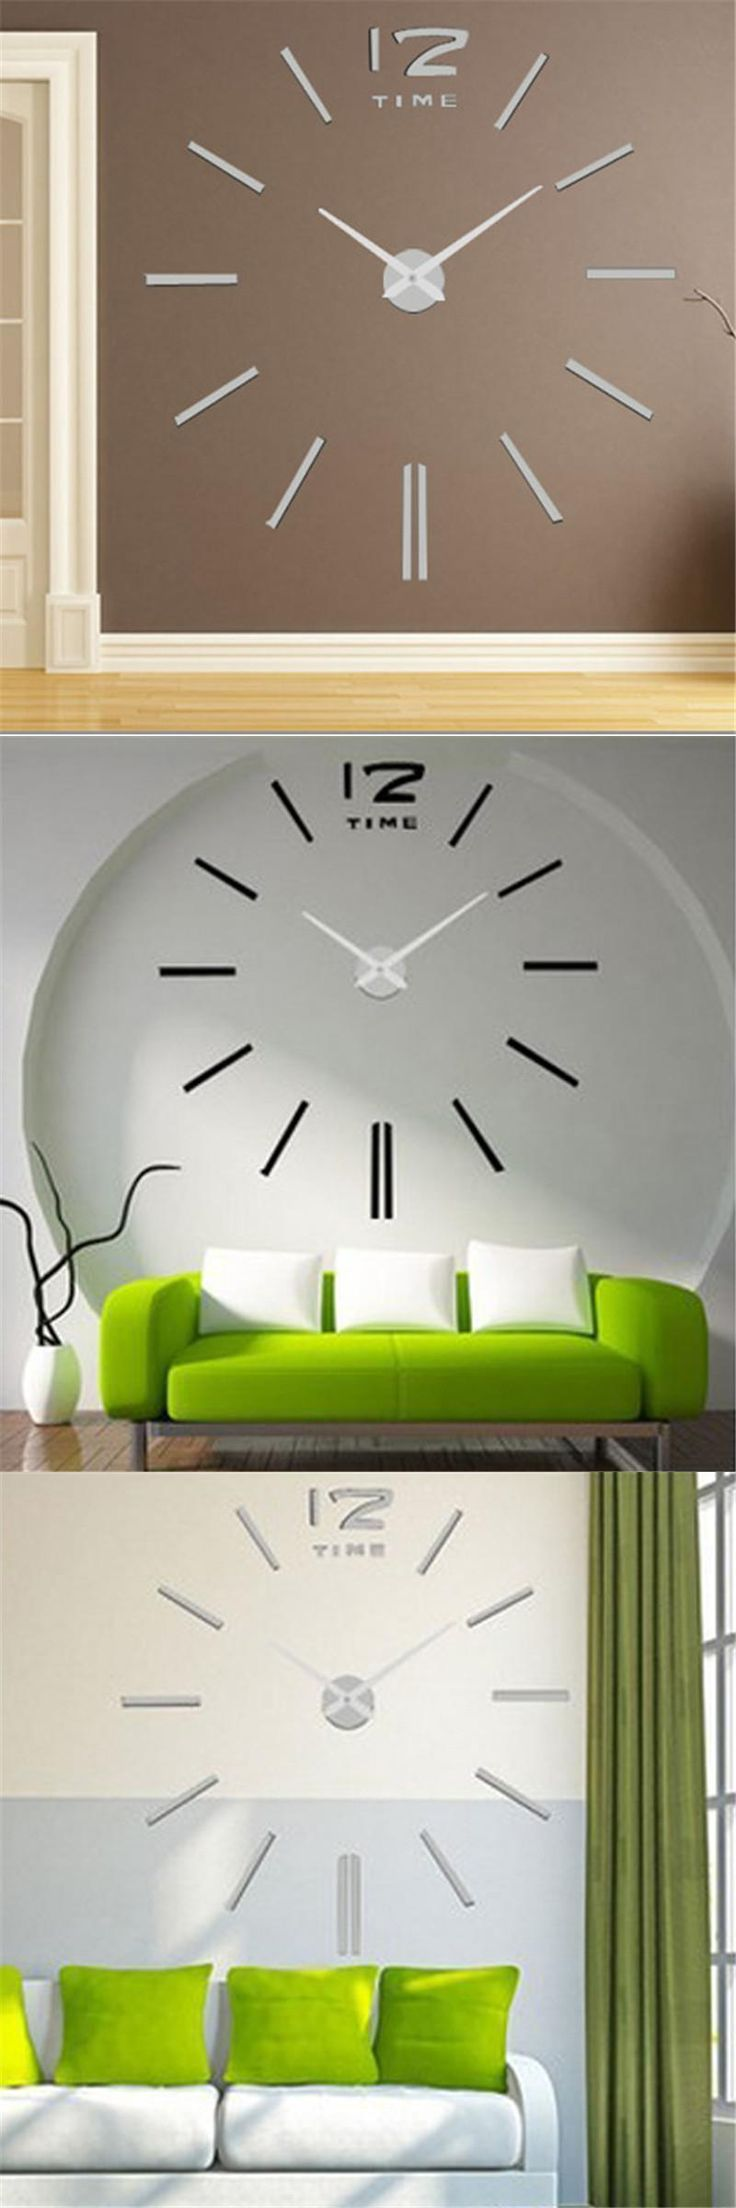 Best 25 large decorative wall clocks ideas on pinterest large modern design big wall clock large decorative wall clocks home decor acrylic watch quartz movement creative amipublicfo Image collections